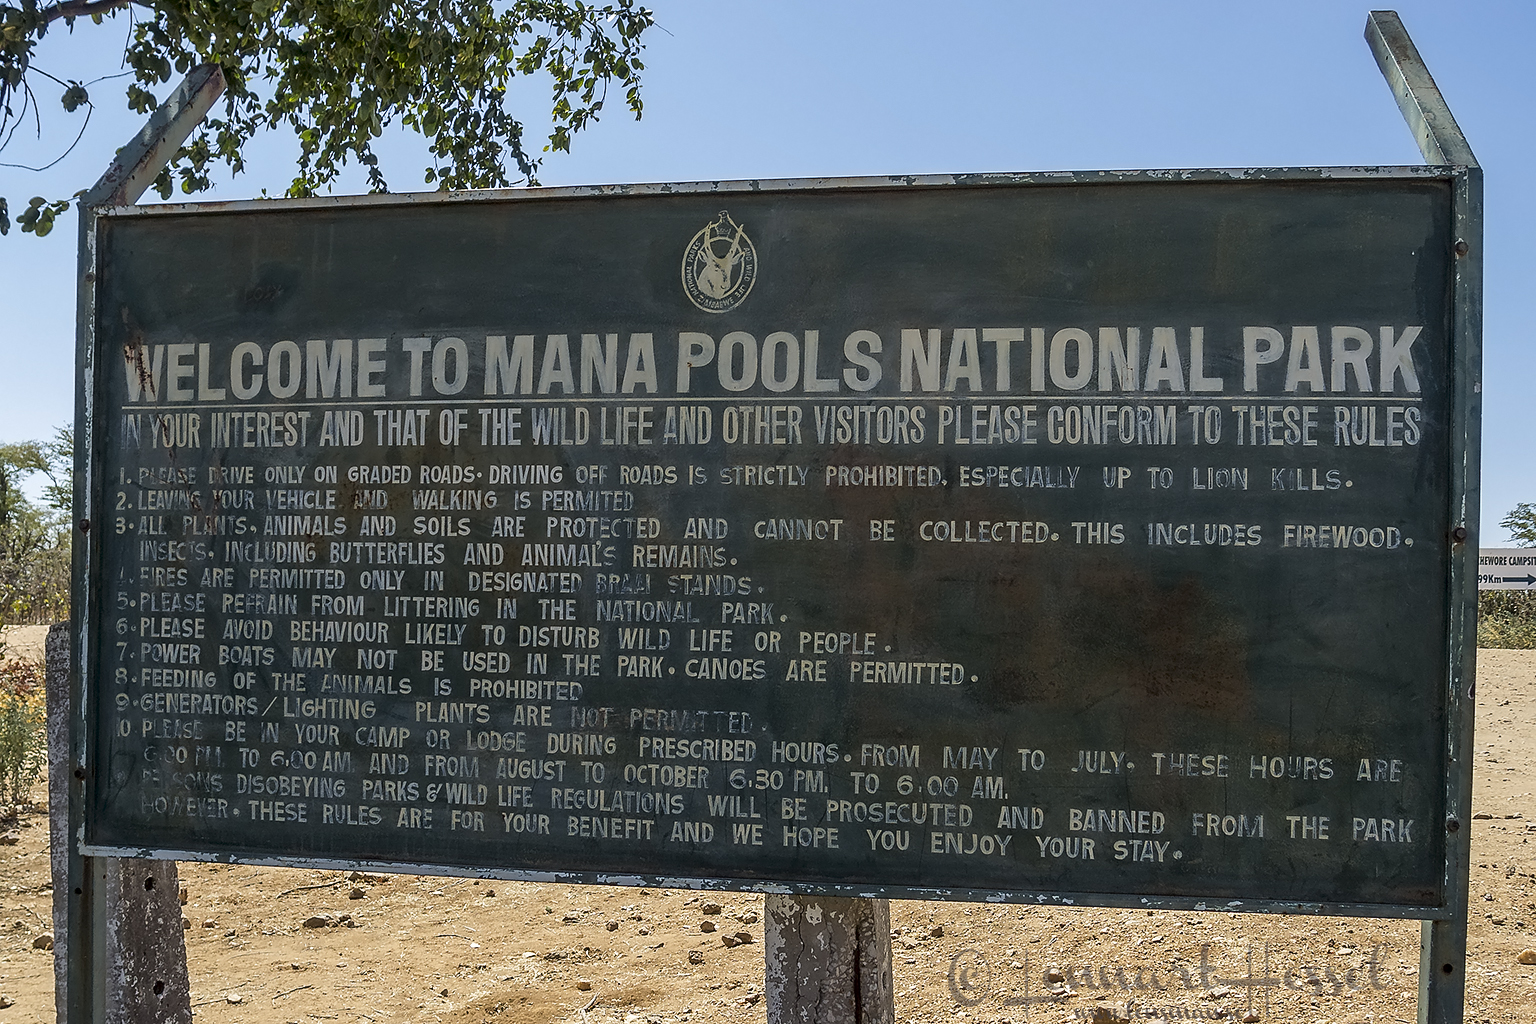 The rules in Mana Pools National Park, Zimbabwe